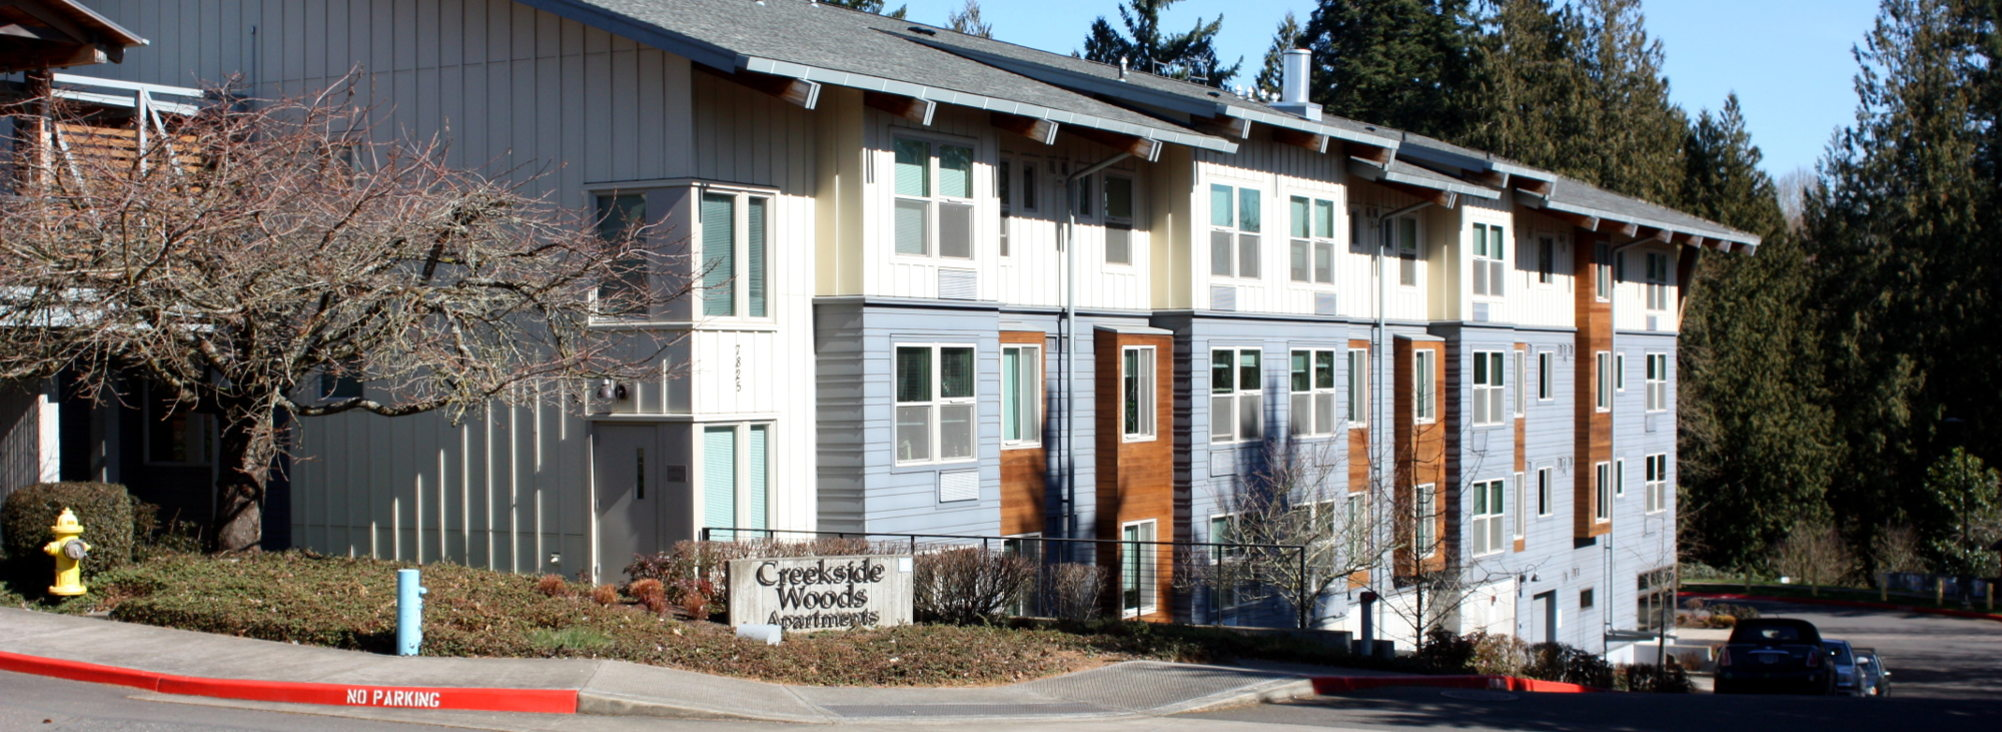 Creekside Woods Apartments in Wilsonville, Oregon